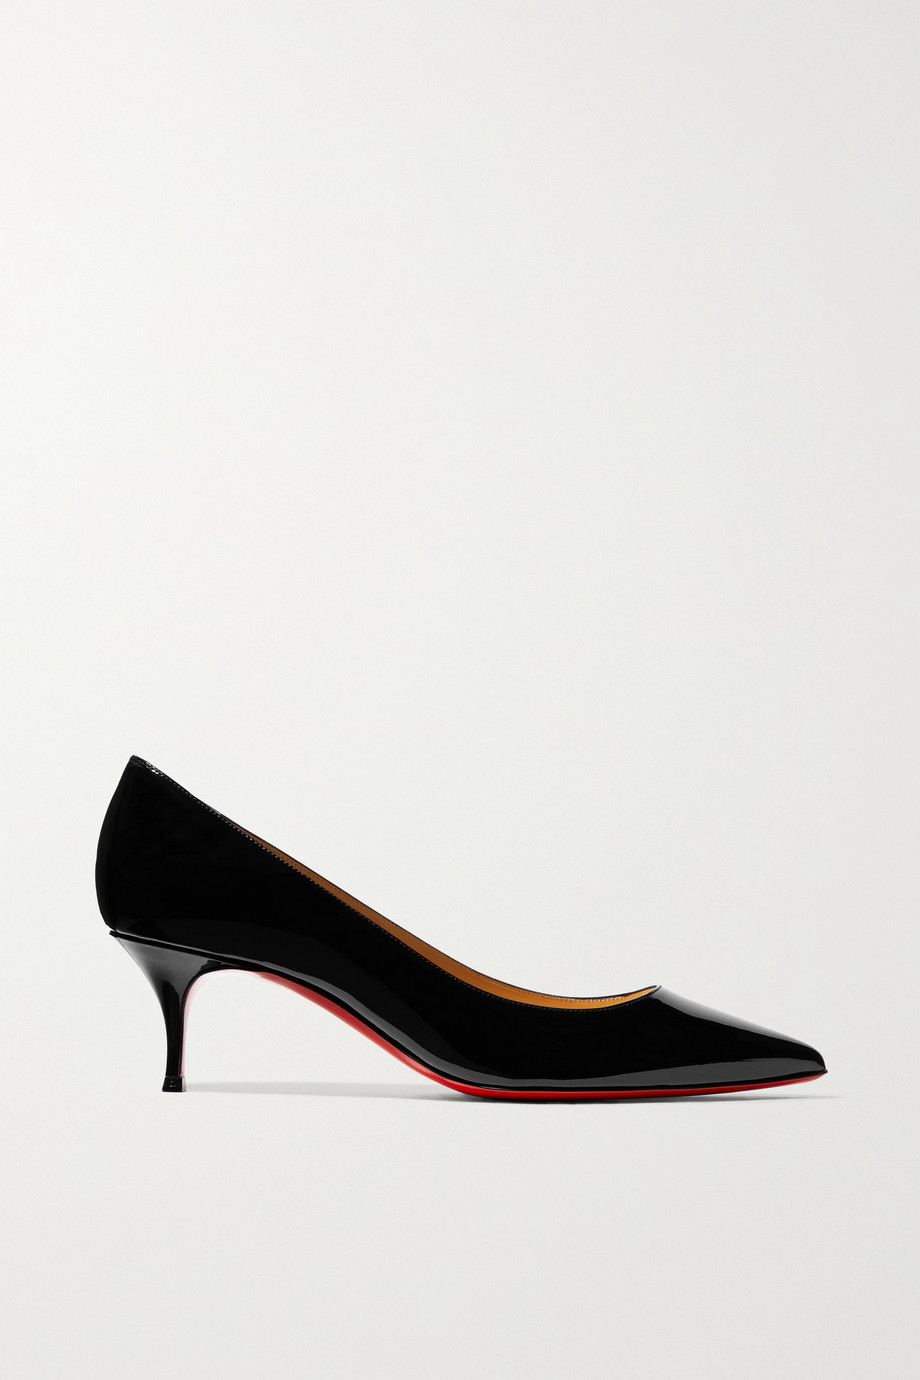 CHRISTIAN LOUBOUTIN Kate 55 patent-leather pumps